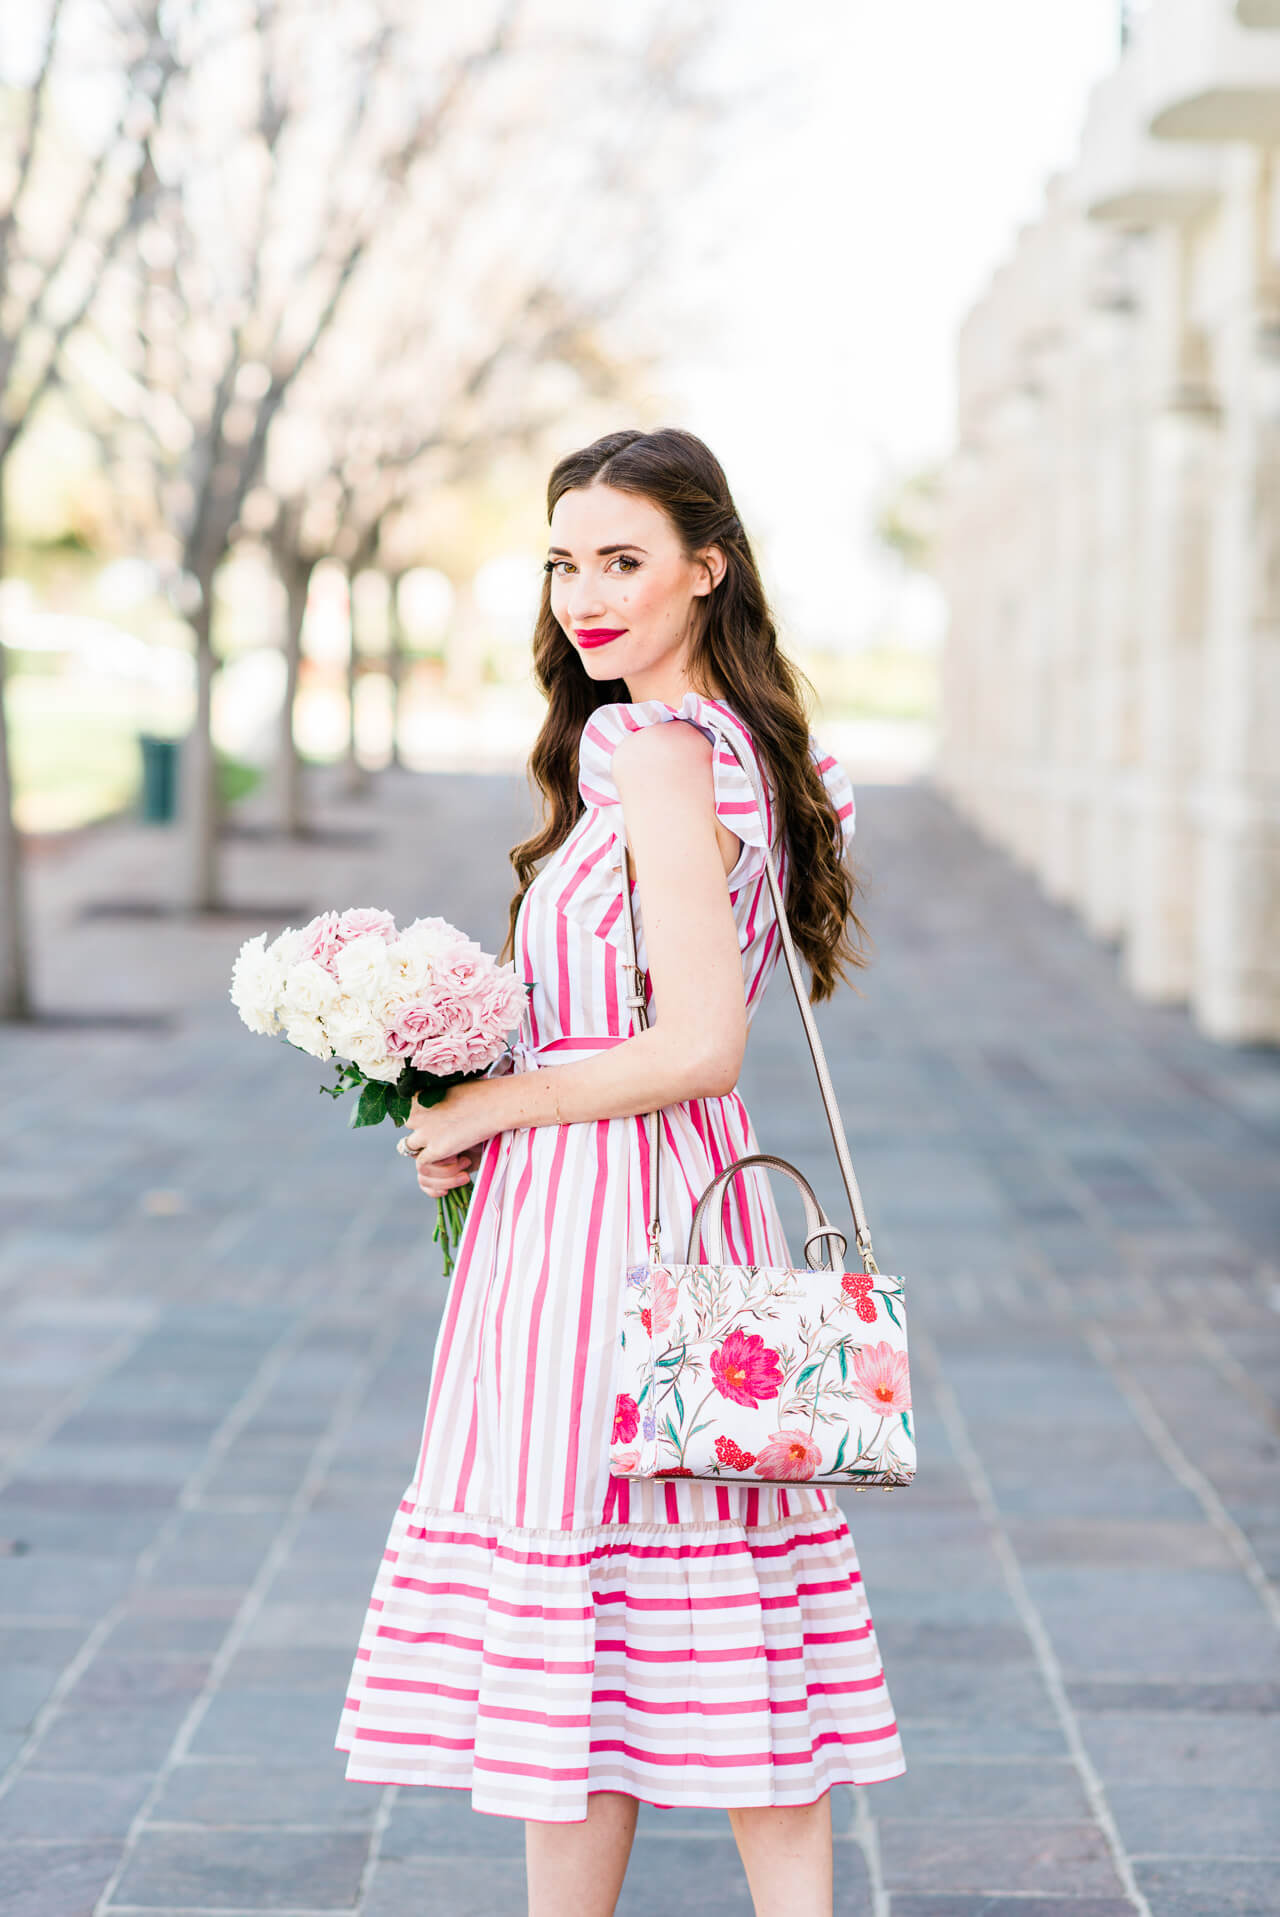 pink and white striped dress with a floral bag - such cute outfit inspiration for spring! M Loves M Orange County Fashion and Lifestyle Blogger @marmar